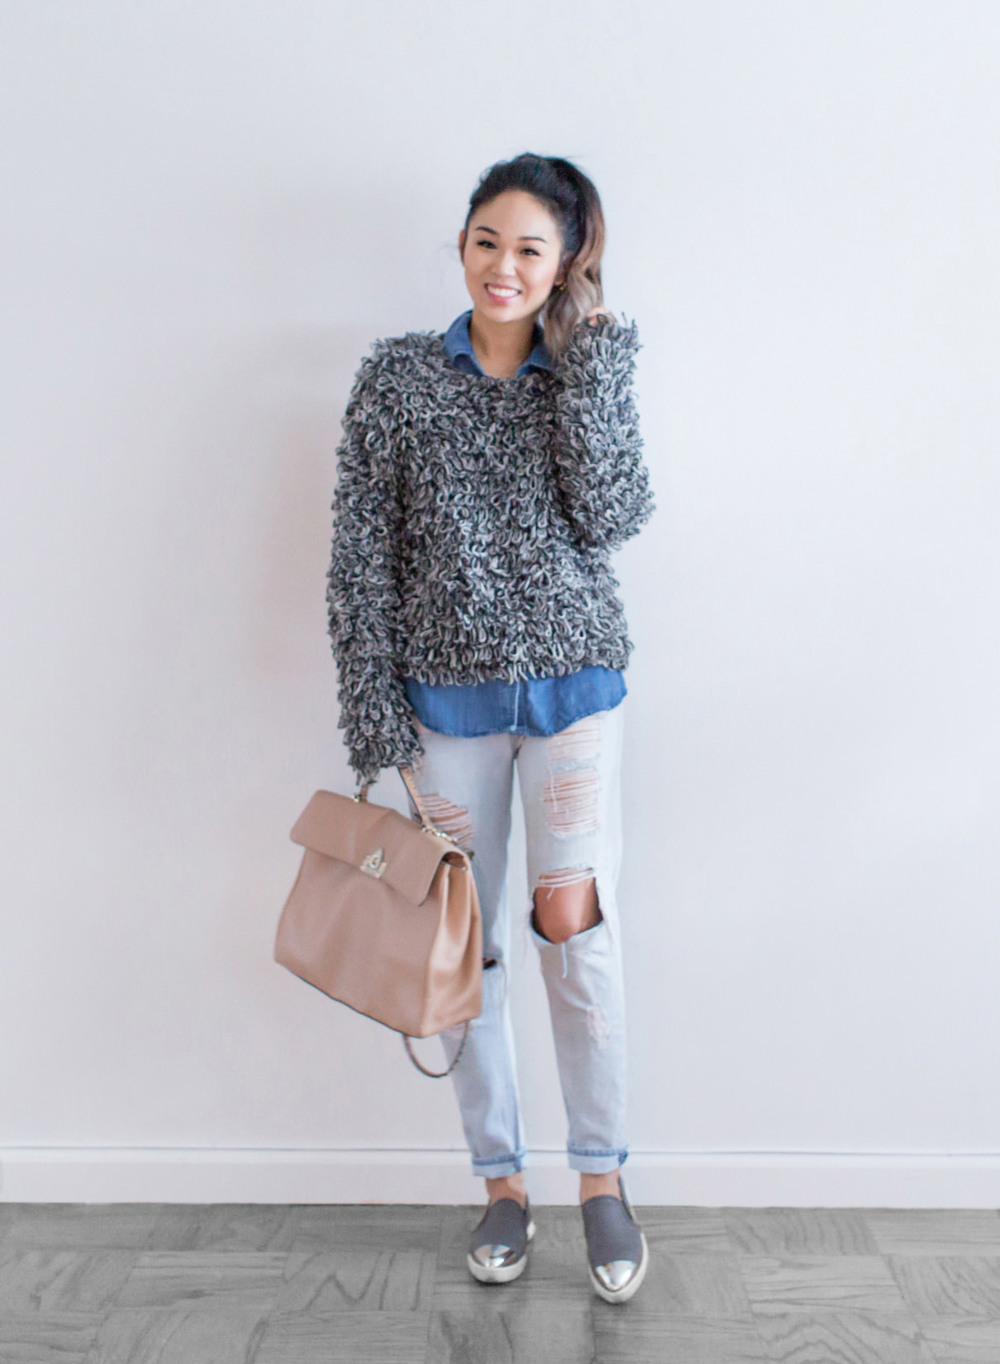 cocotrish style denim patricia chang sokophotos sweater casual